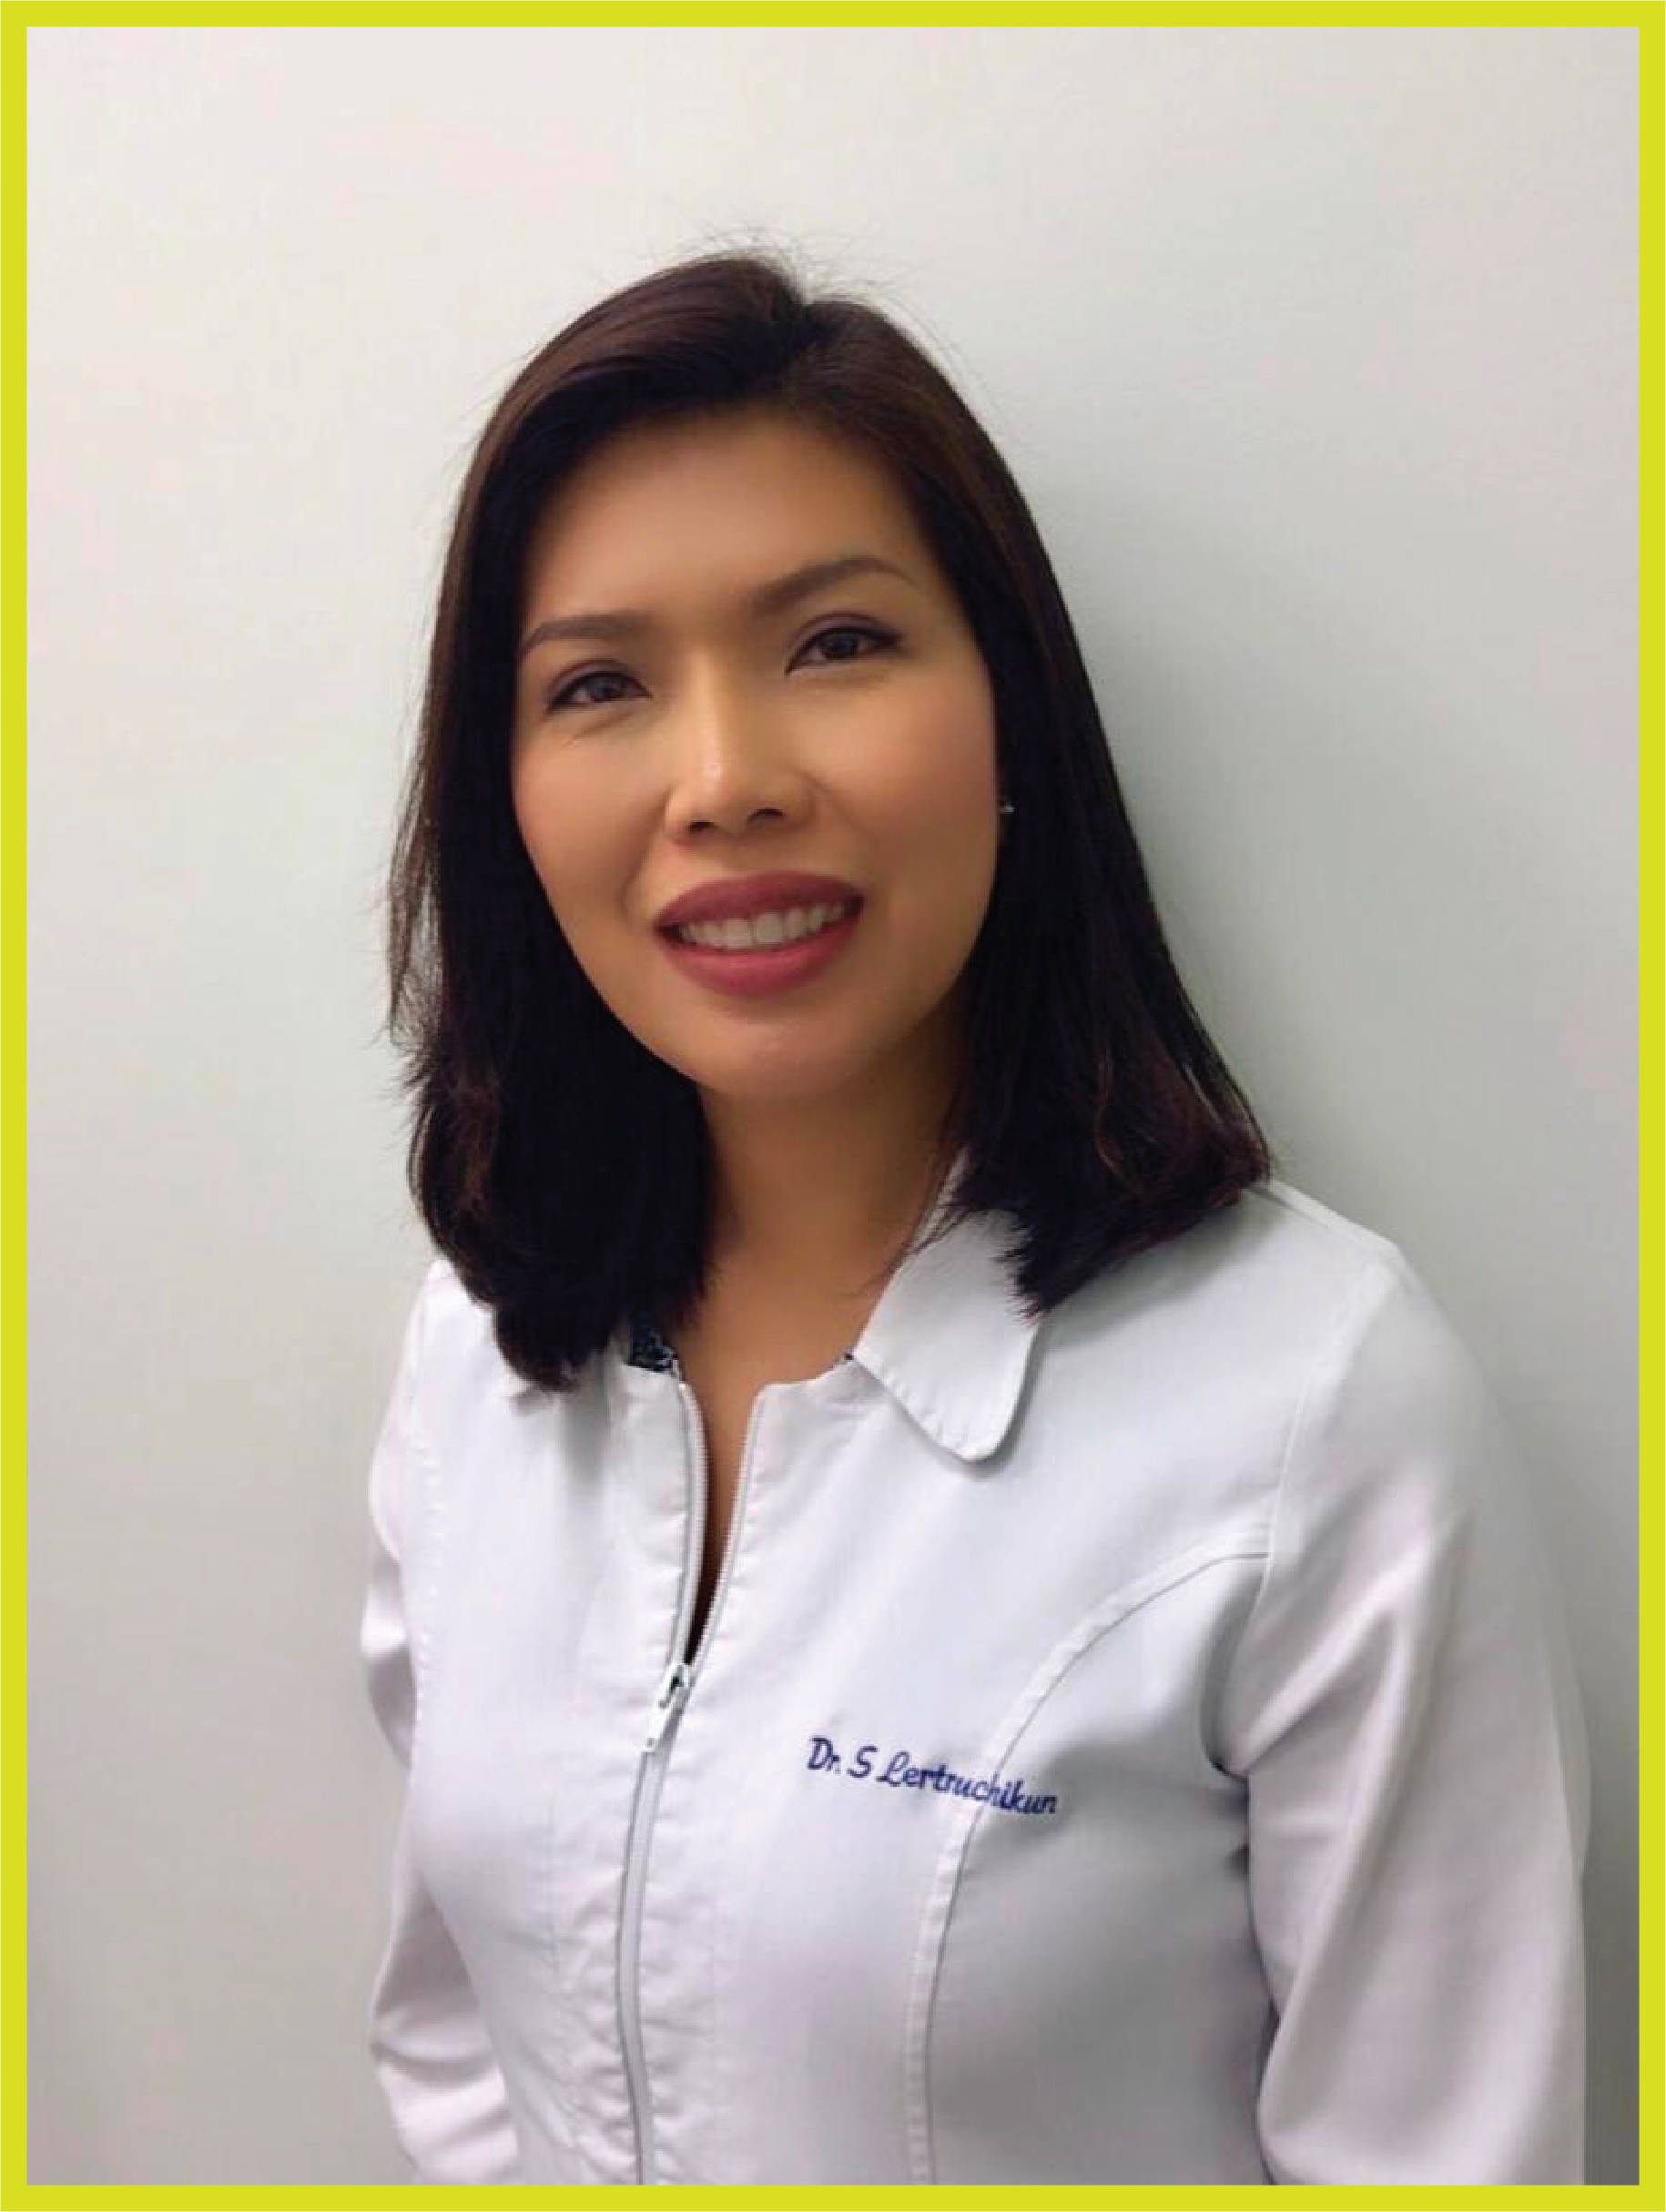 Ready to smile? Dr. Sophie Lertruchikun and the team at Willowbrook Dental Clinic will help you decide if Invisalign is right for you.